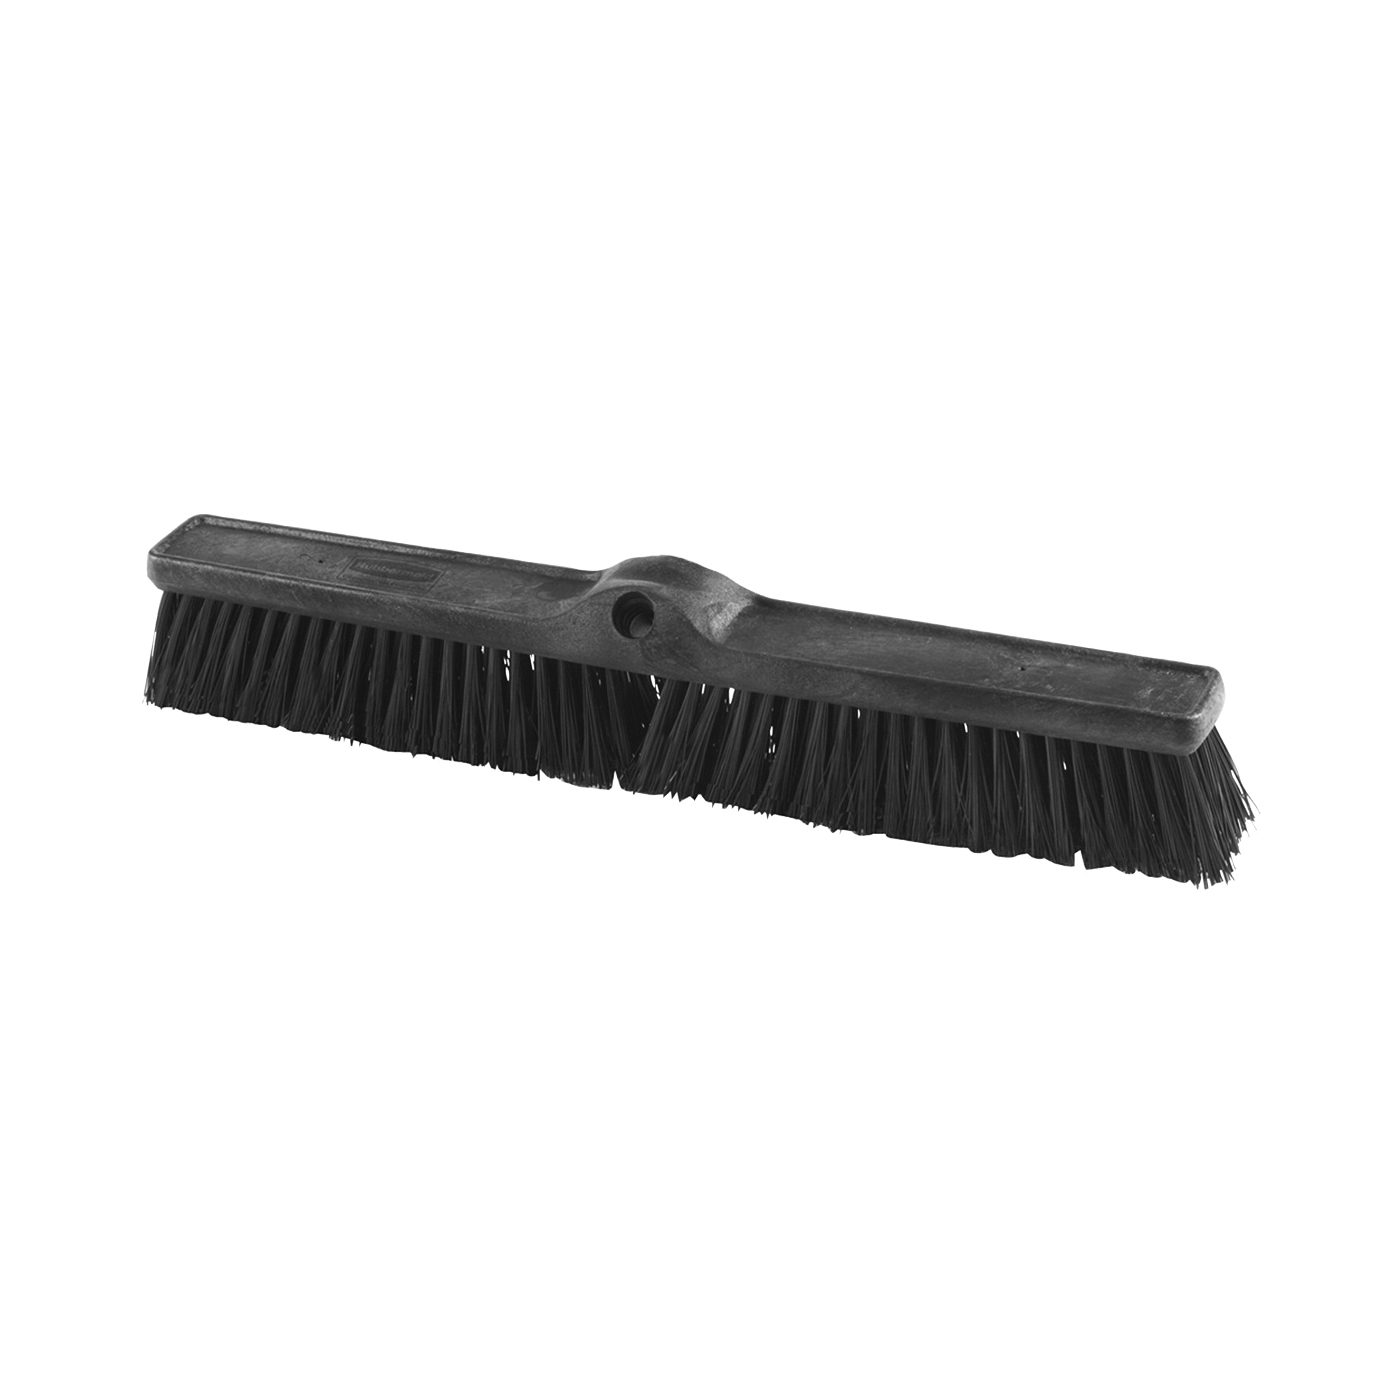 Picture of Rubbermaid 1861212 Floor Sweep, 24 in Sweep Face, Polypropylene Bristle